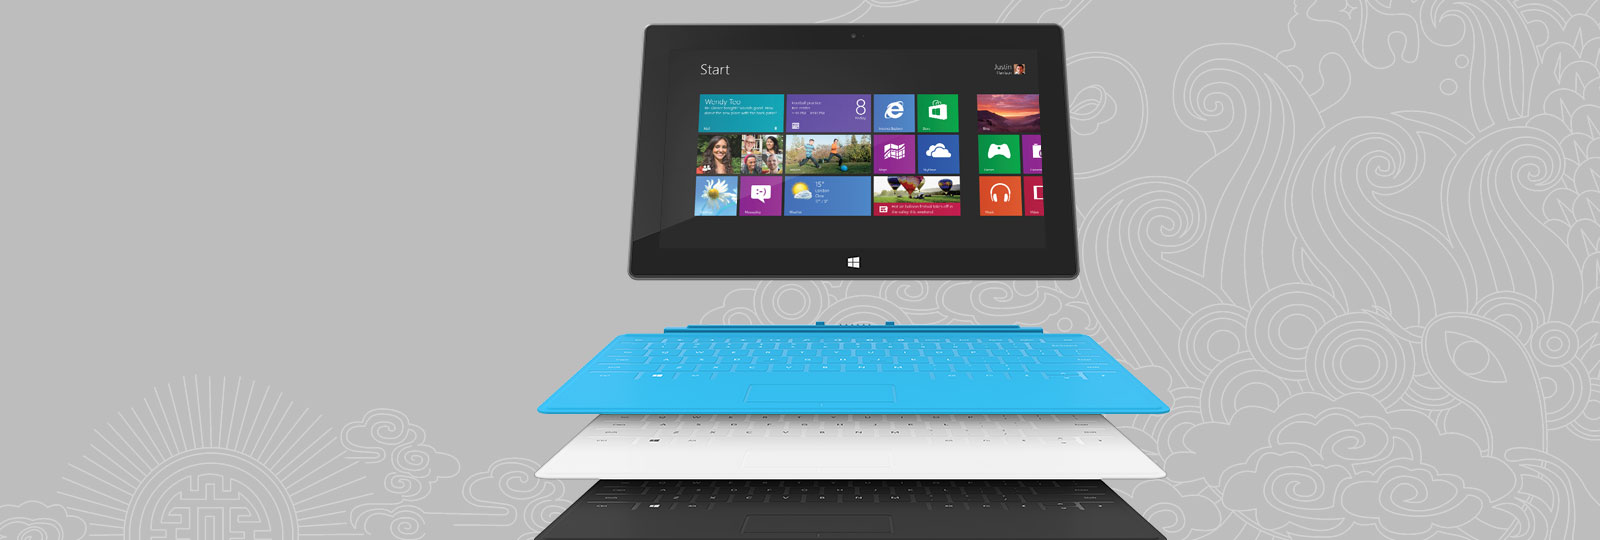 Get a free cover when you buy a Surface RT.